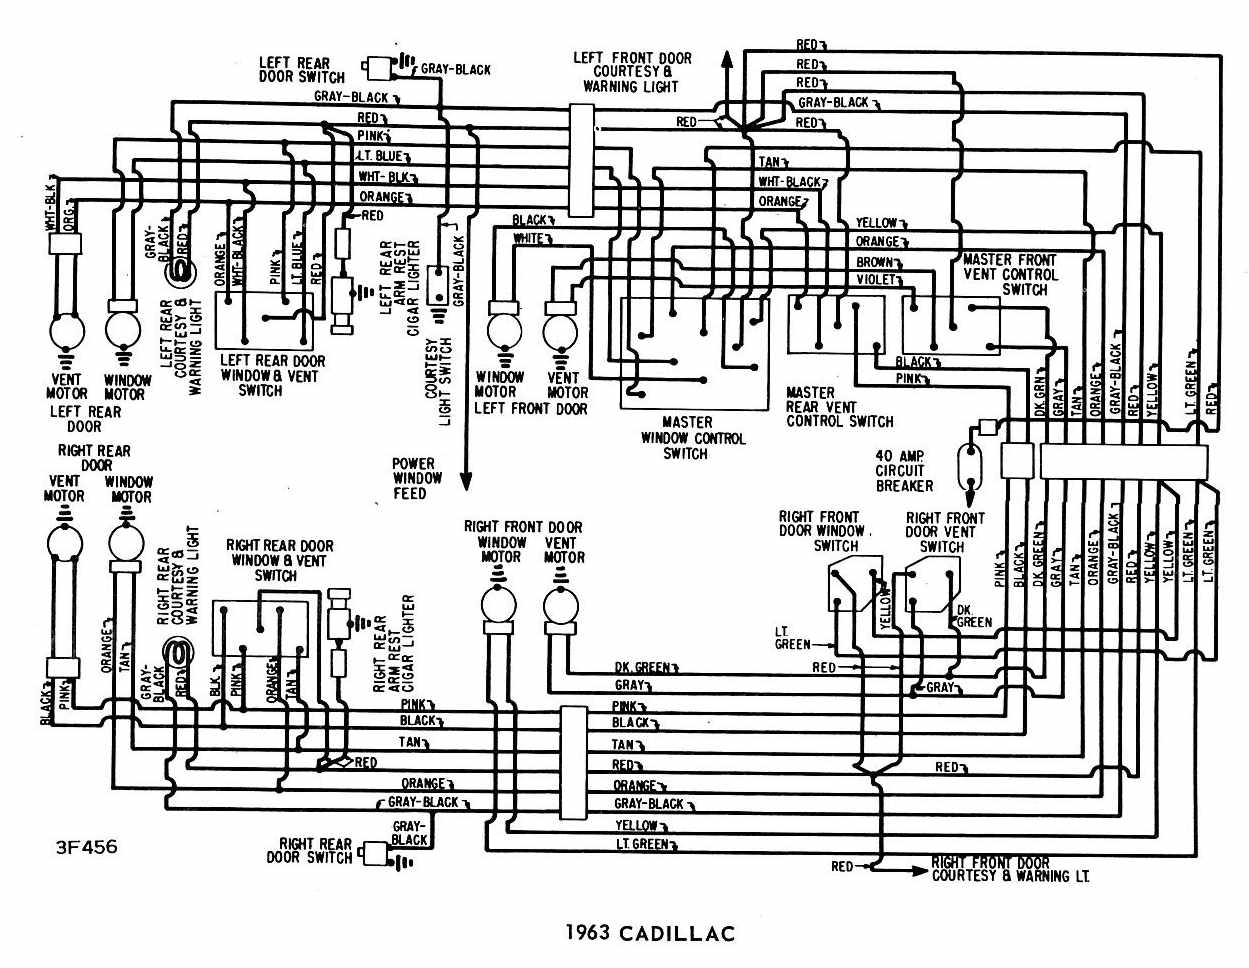 Cadillac 1963 Windows Wiring Diagram All About Wiring